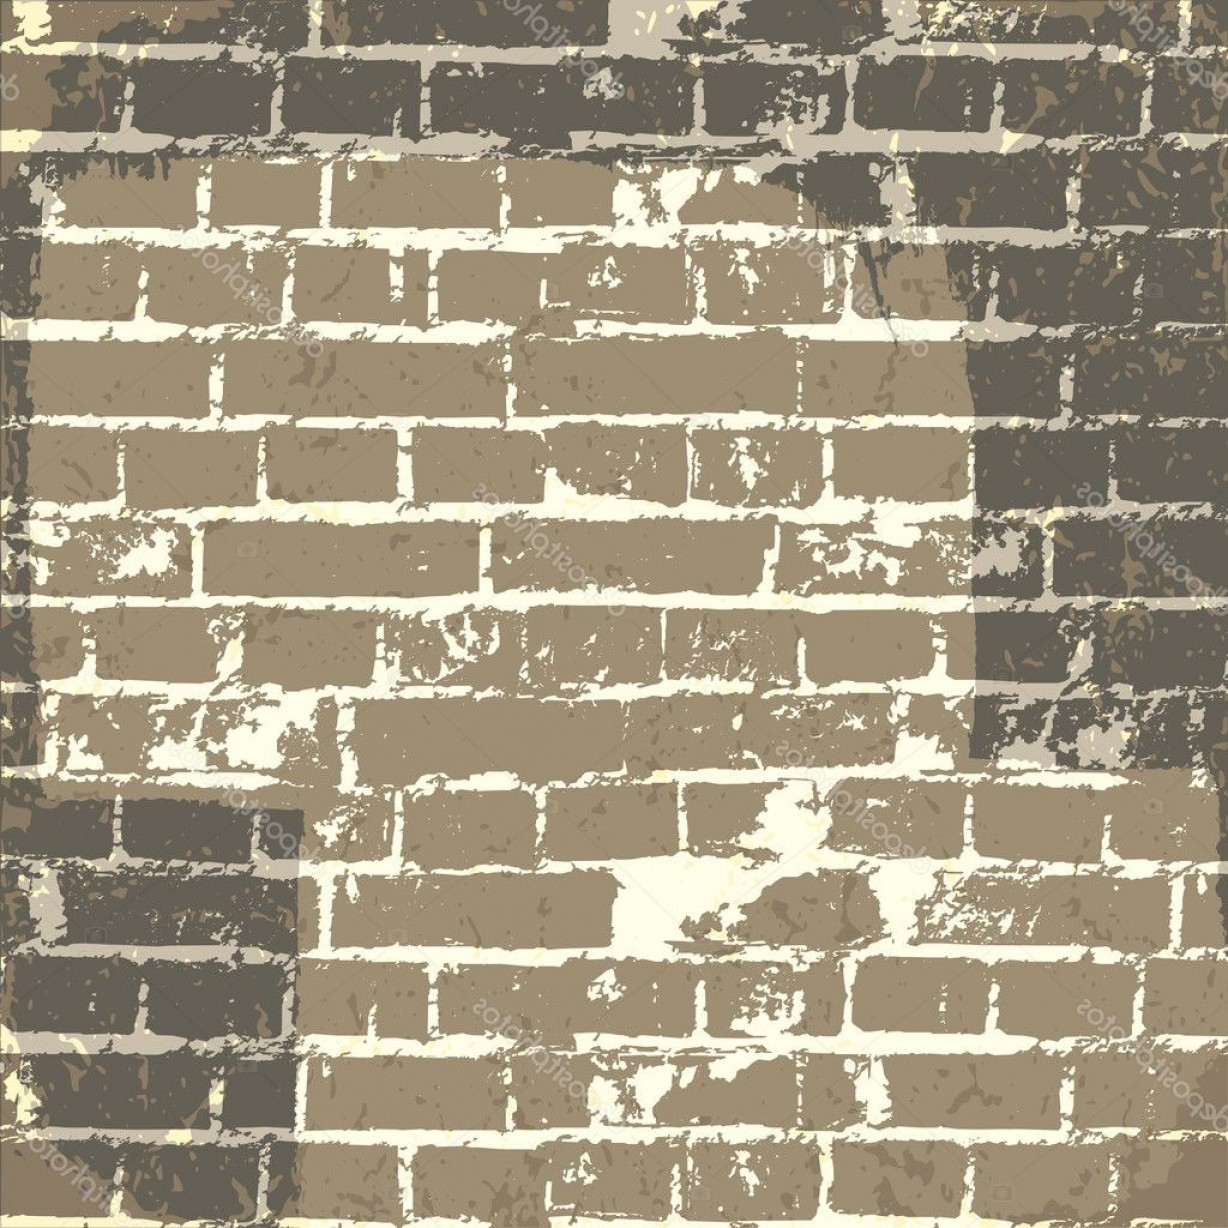 Wall Background Vector: Stock Illustration Grunge Brick Wall Background For